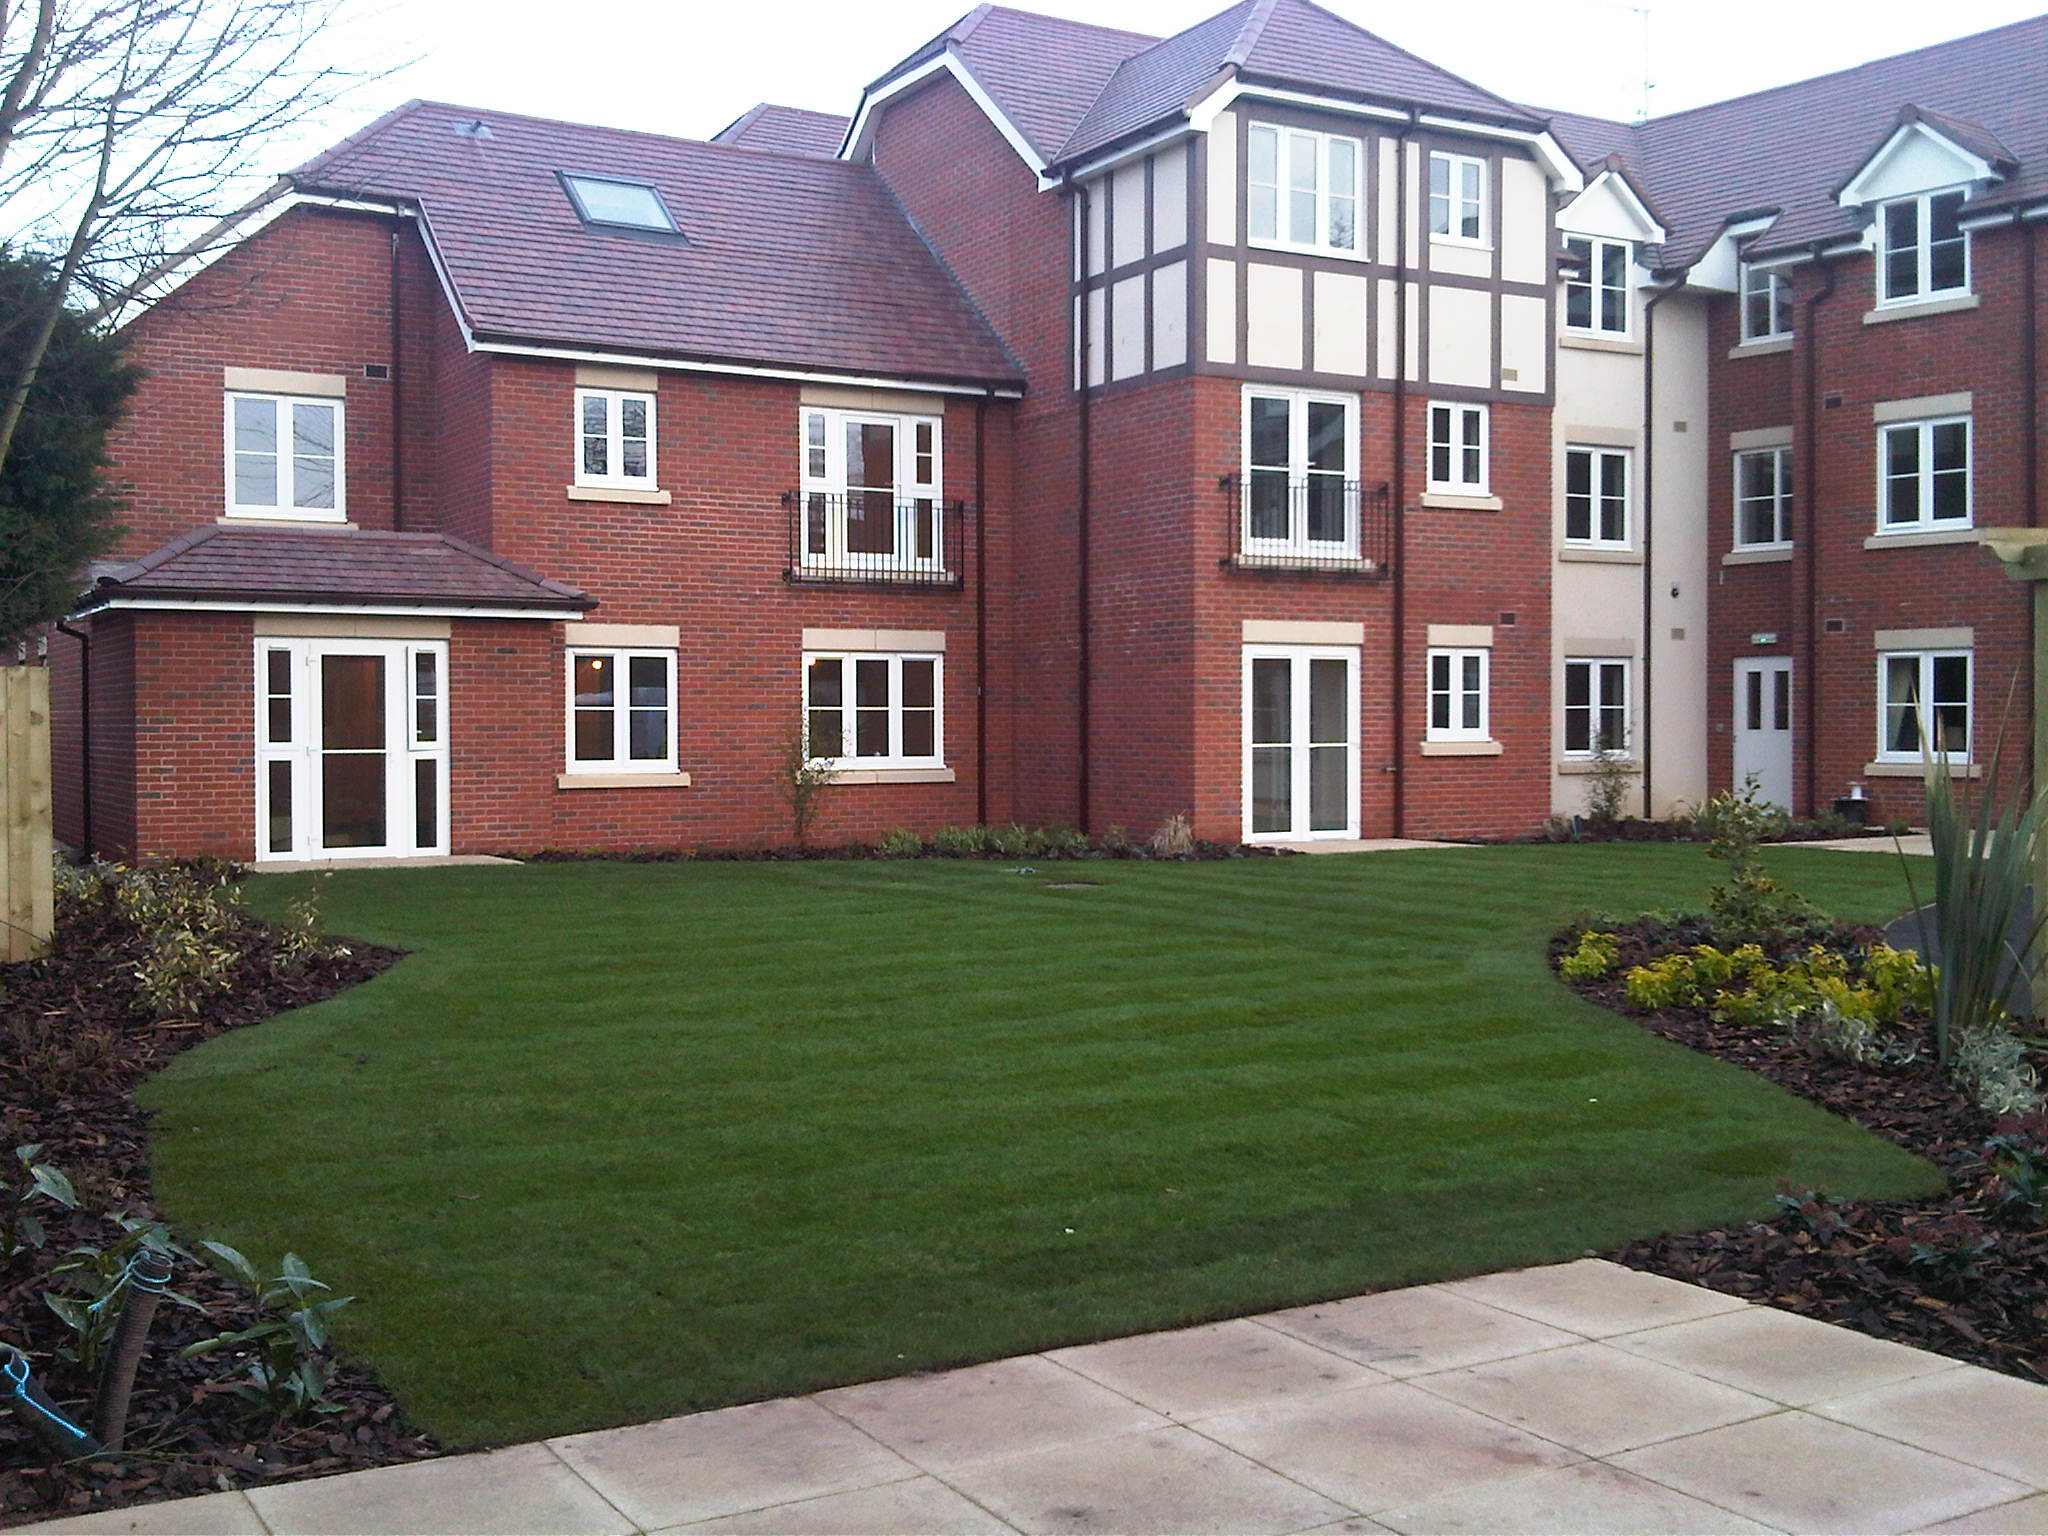 069-apartments-with-grass